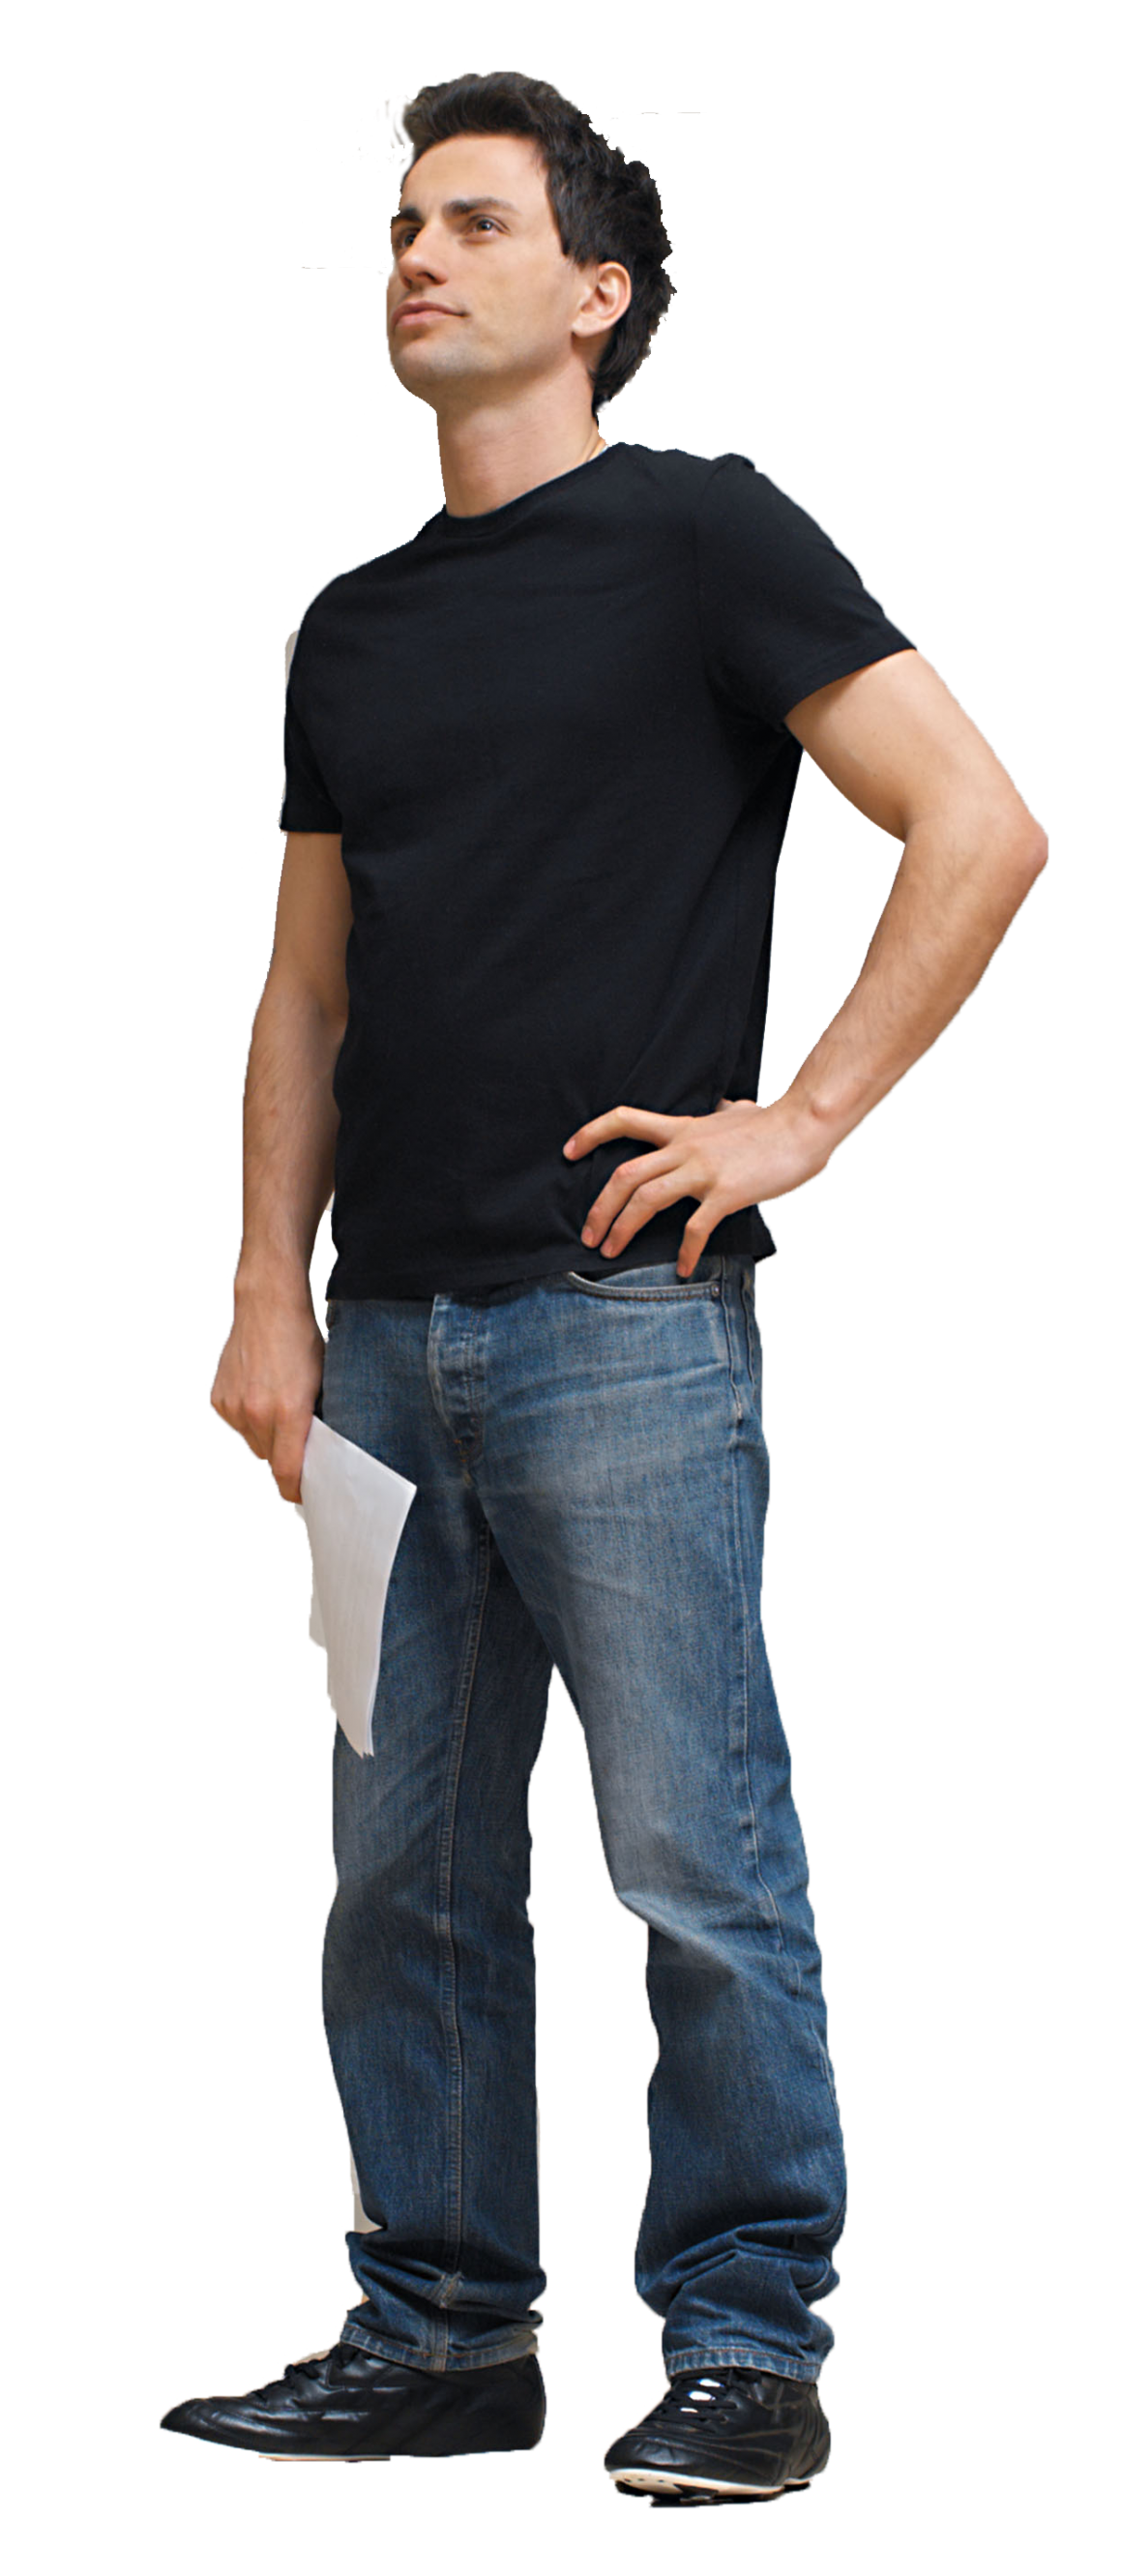 Image purepng free transparent. Man png picture royalty free stock